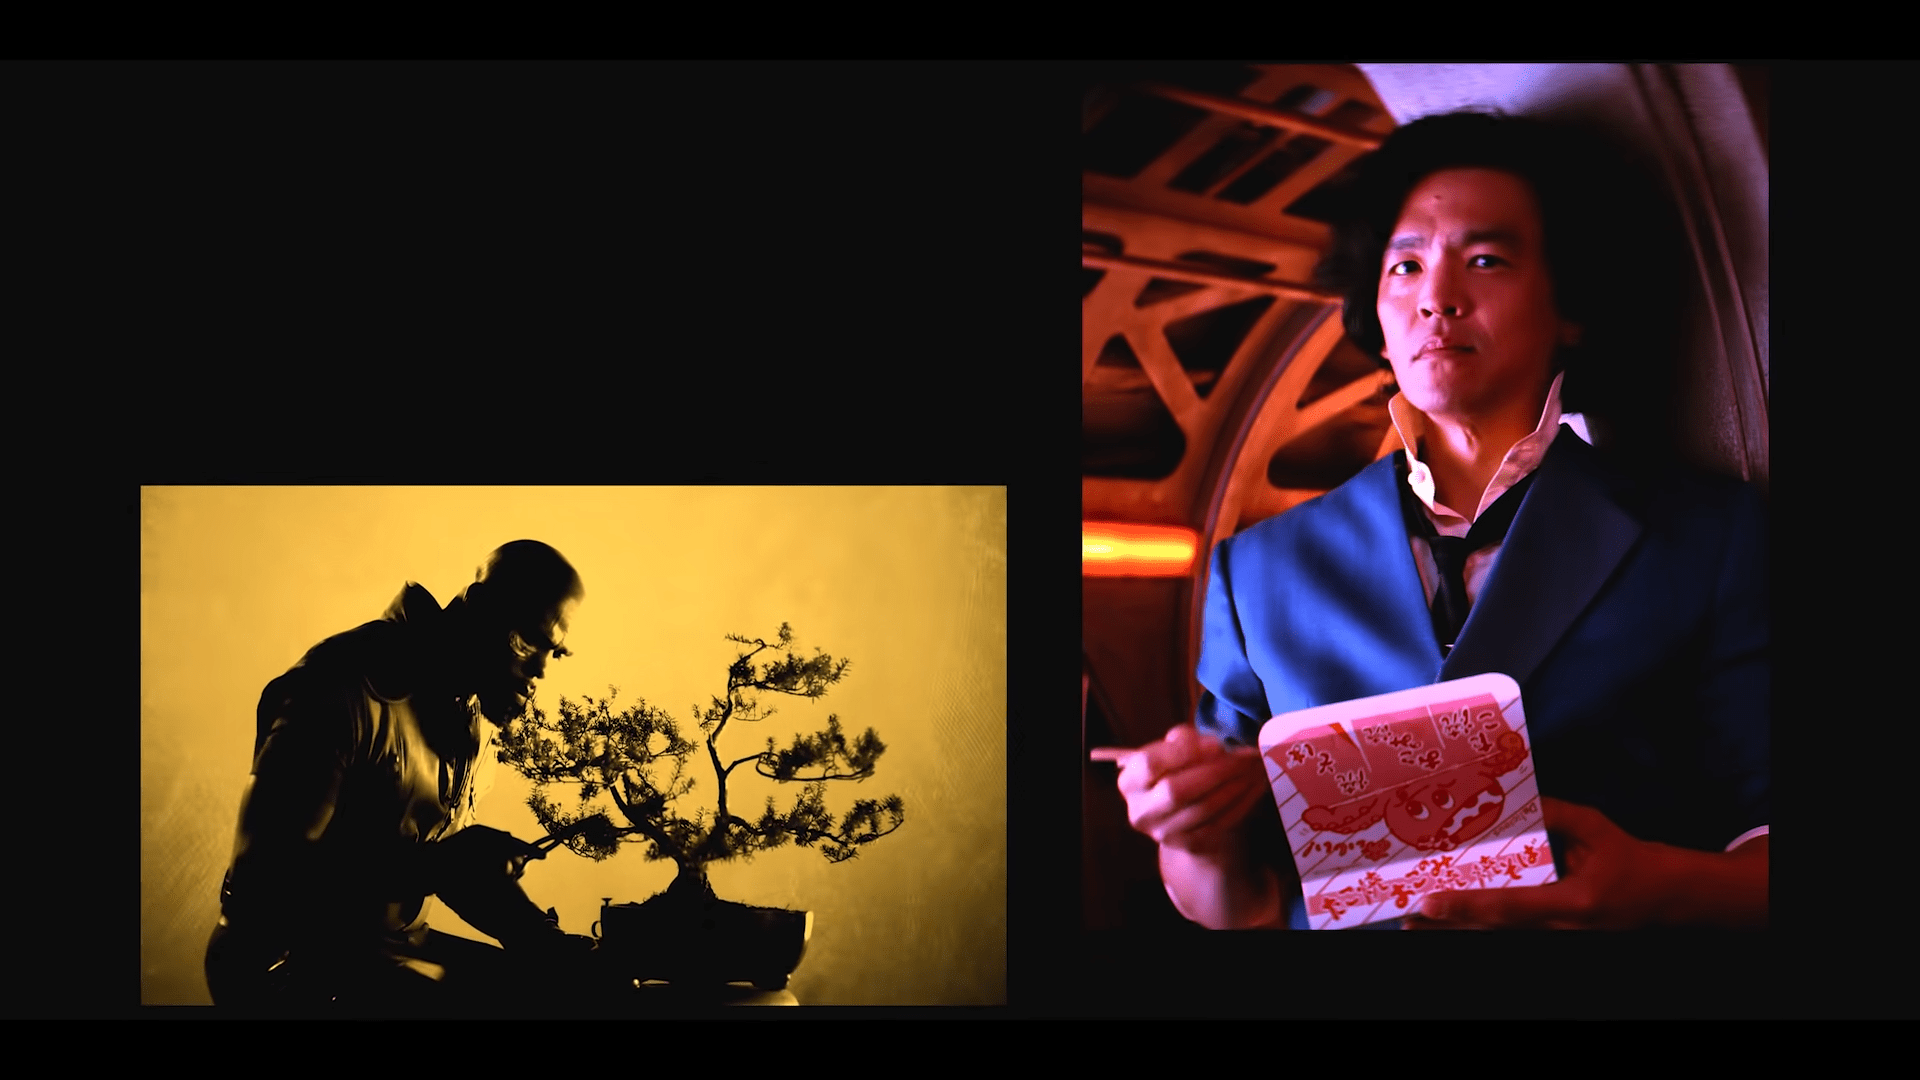 In the new Cowboy Bebop opening, Jet prunes his bonsai and Spike finally gets to eat